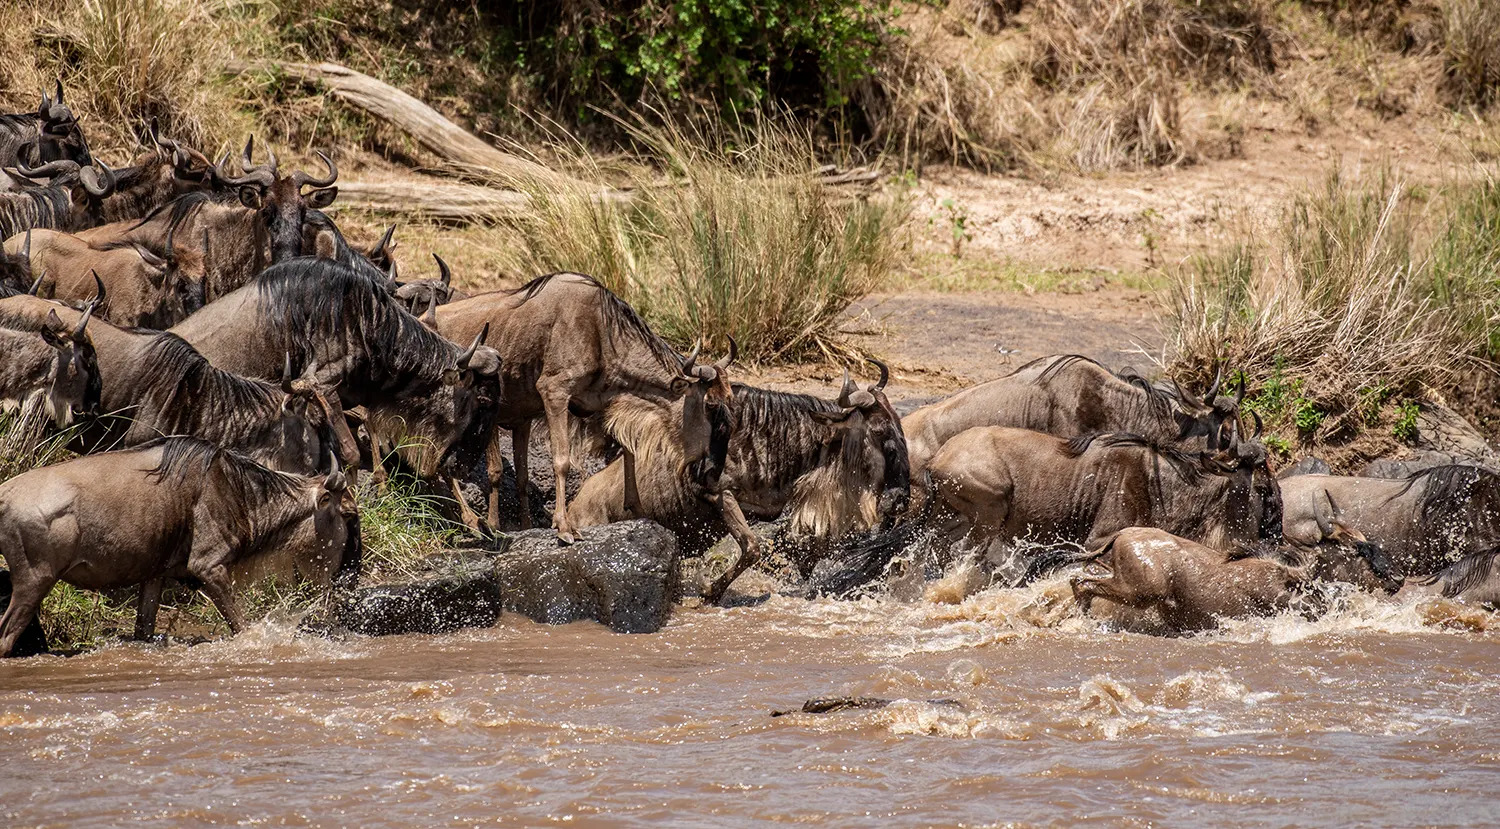 TNW_16_10_2018_Wildebeest crossing